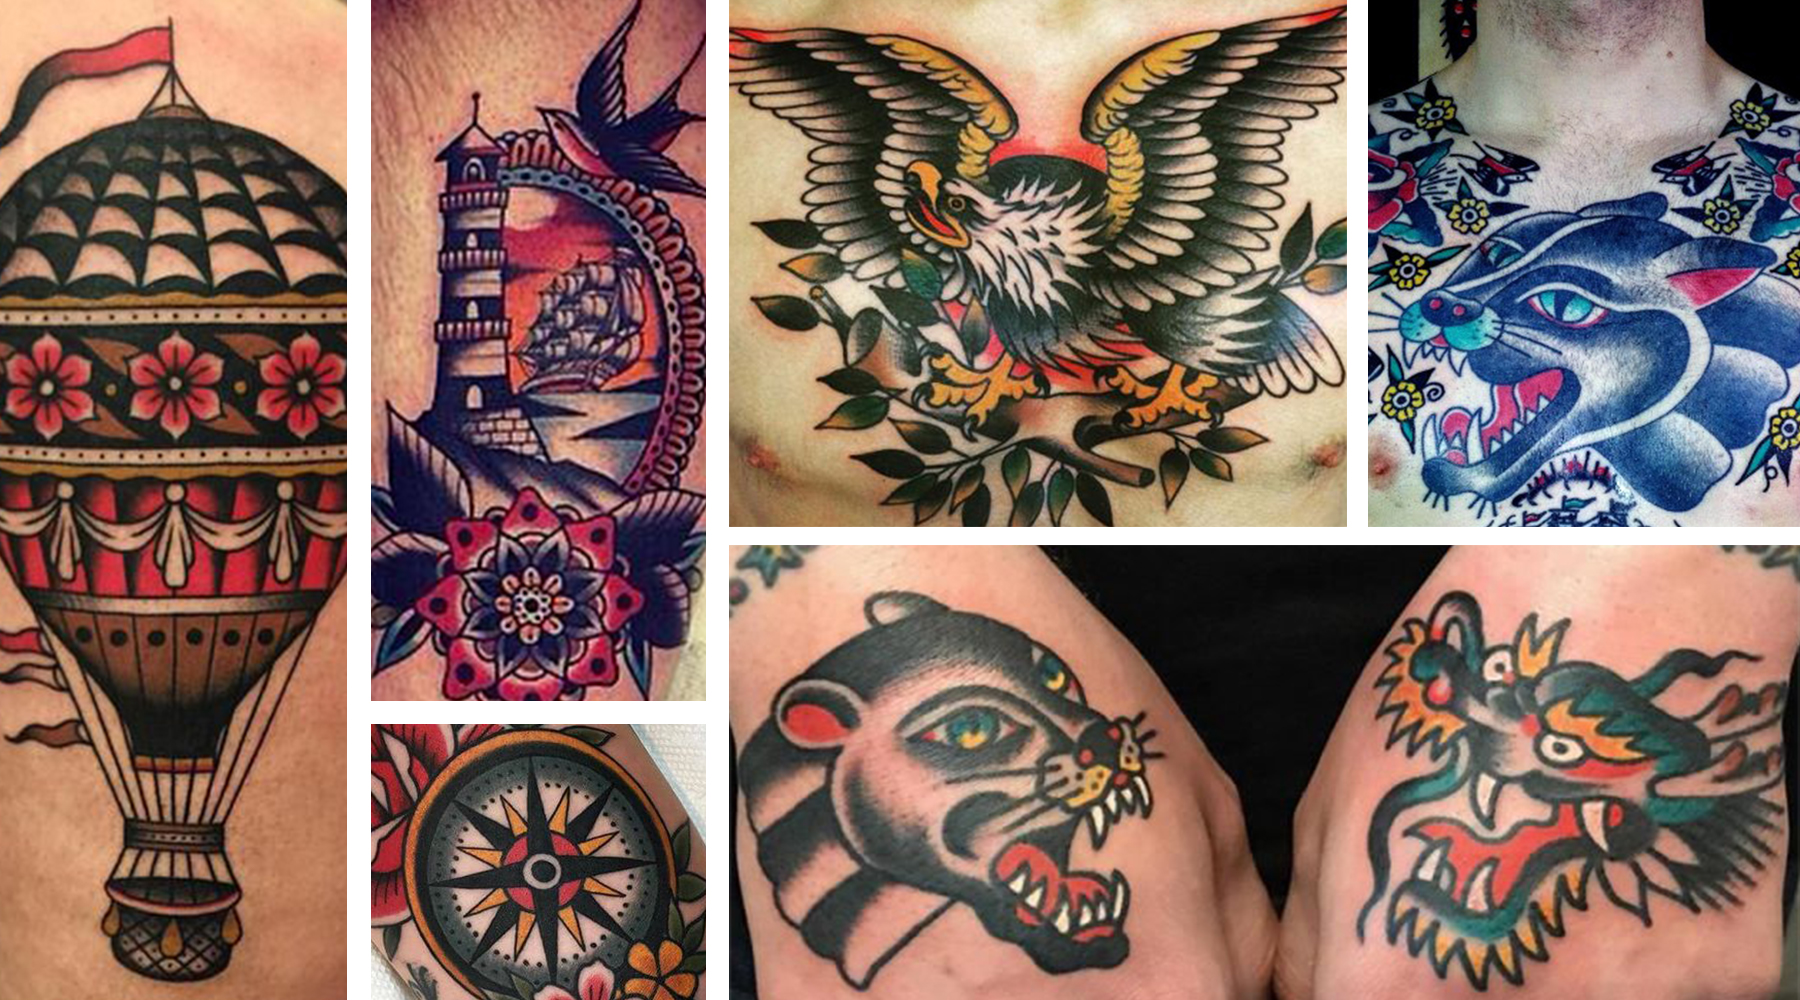 American Traditional ink makes up some of the most widely requested and recognizable tattoos out there. This particular tattoo style has been prominent for almost a century, and every tattoo style we ...